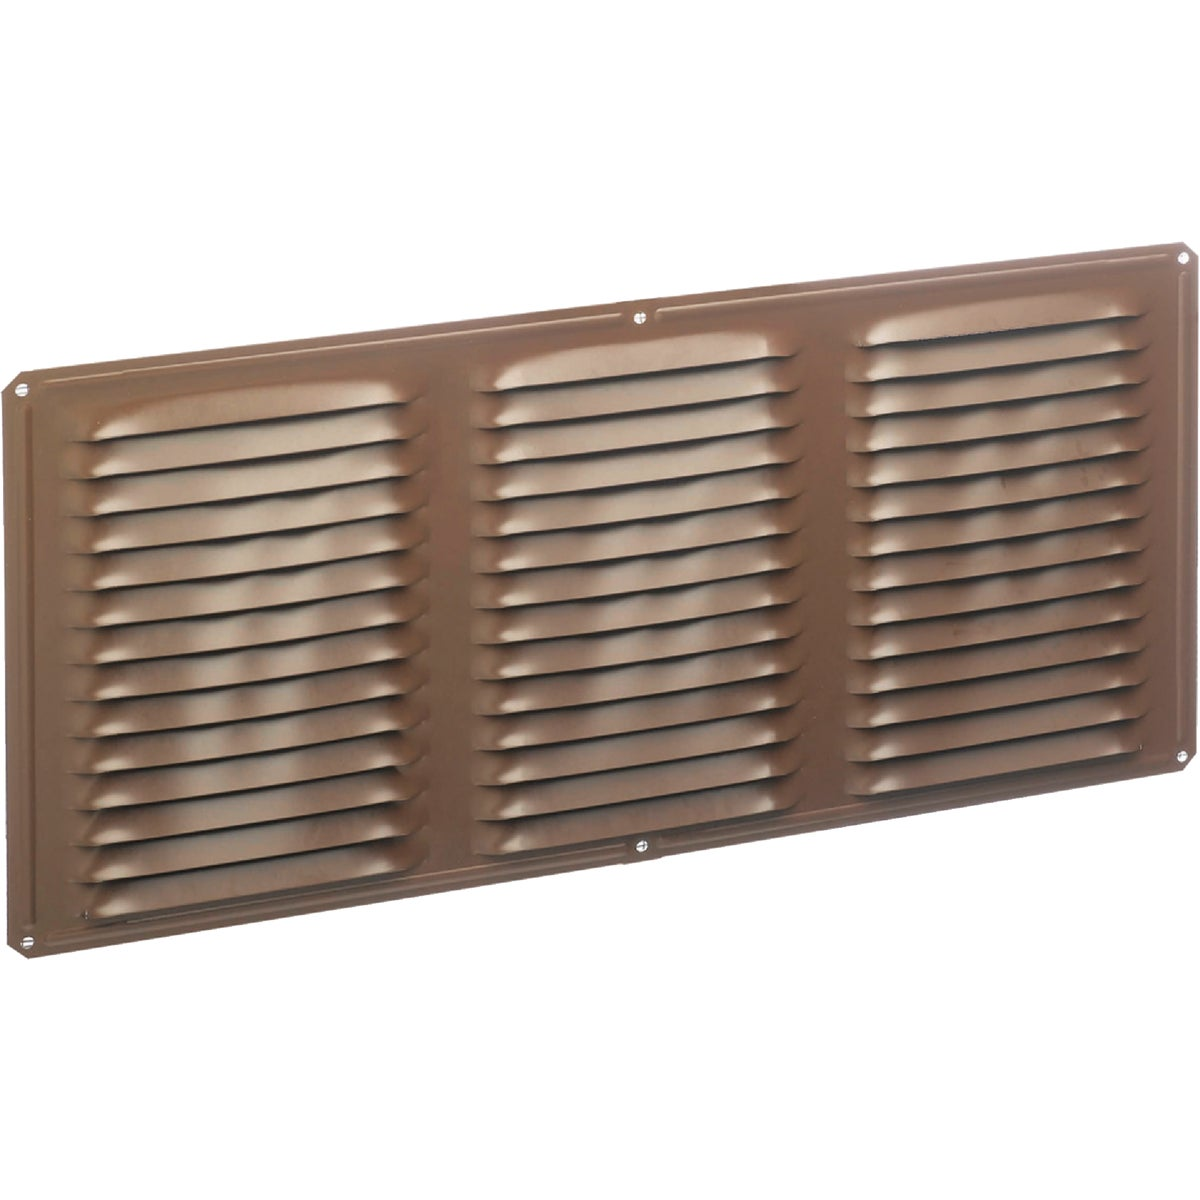 16X6 Br Undereave Vent